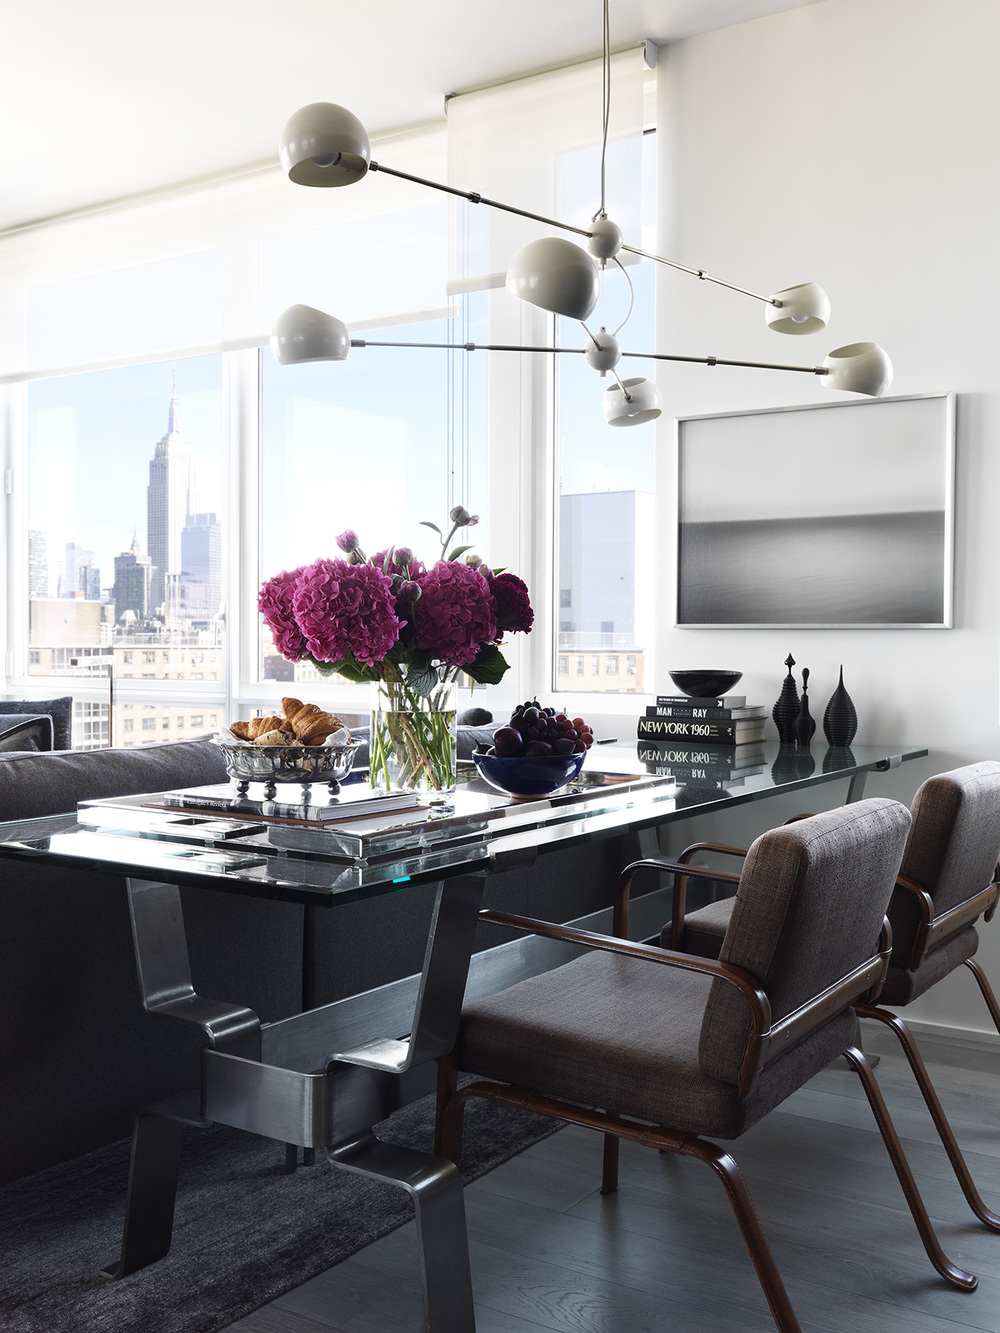 New York City Retreat - DINING AREA - Chelsea, NYC - Schoeller + Darling Interior Design